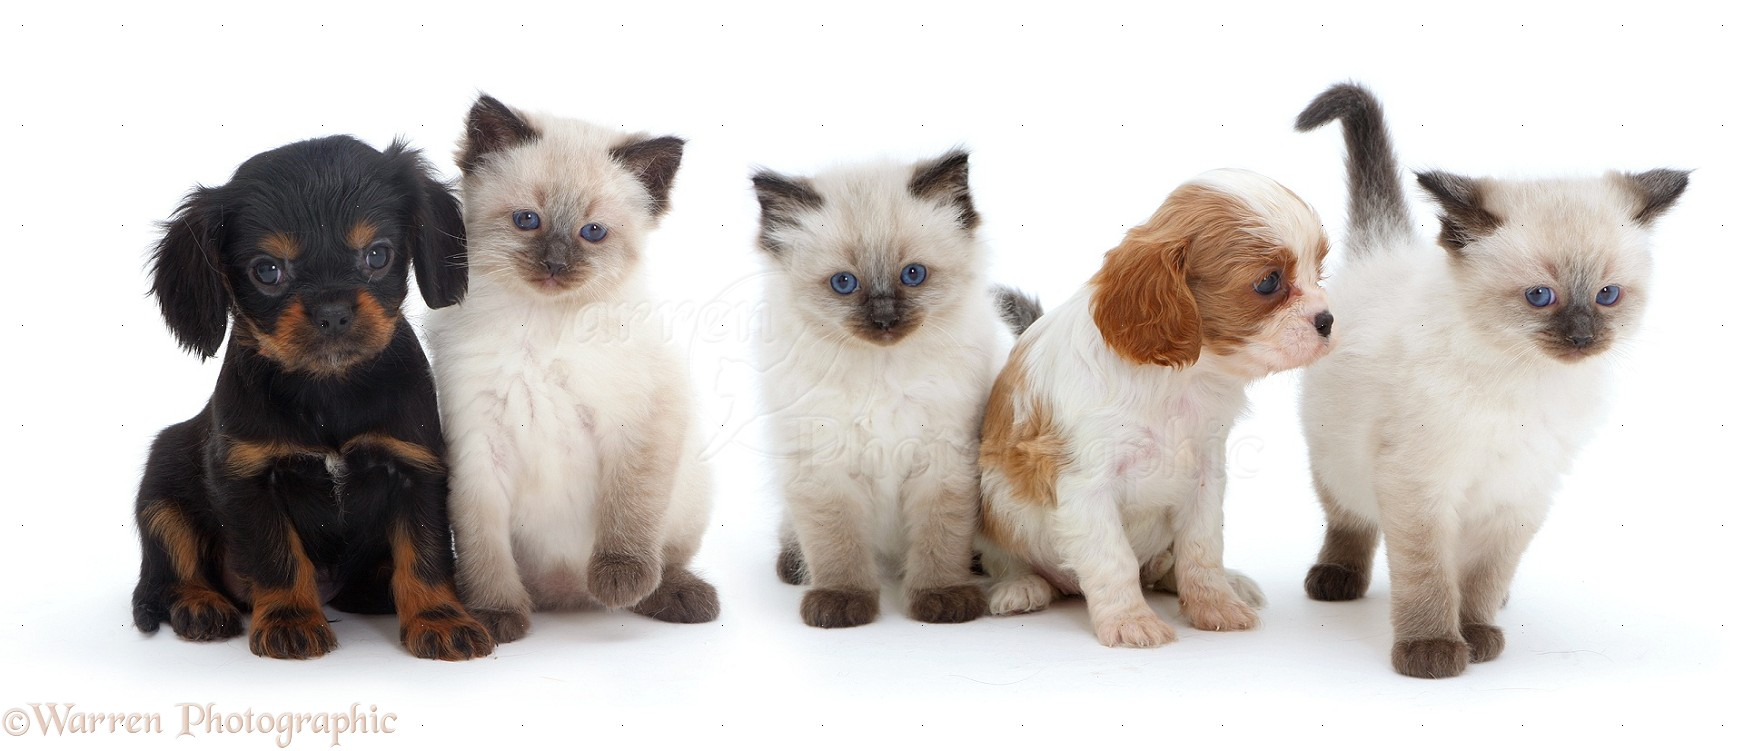 Cute Pics Of Cats And Dogs